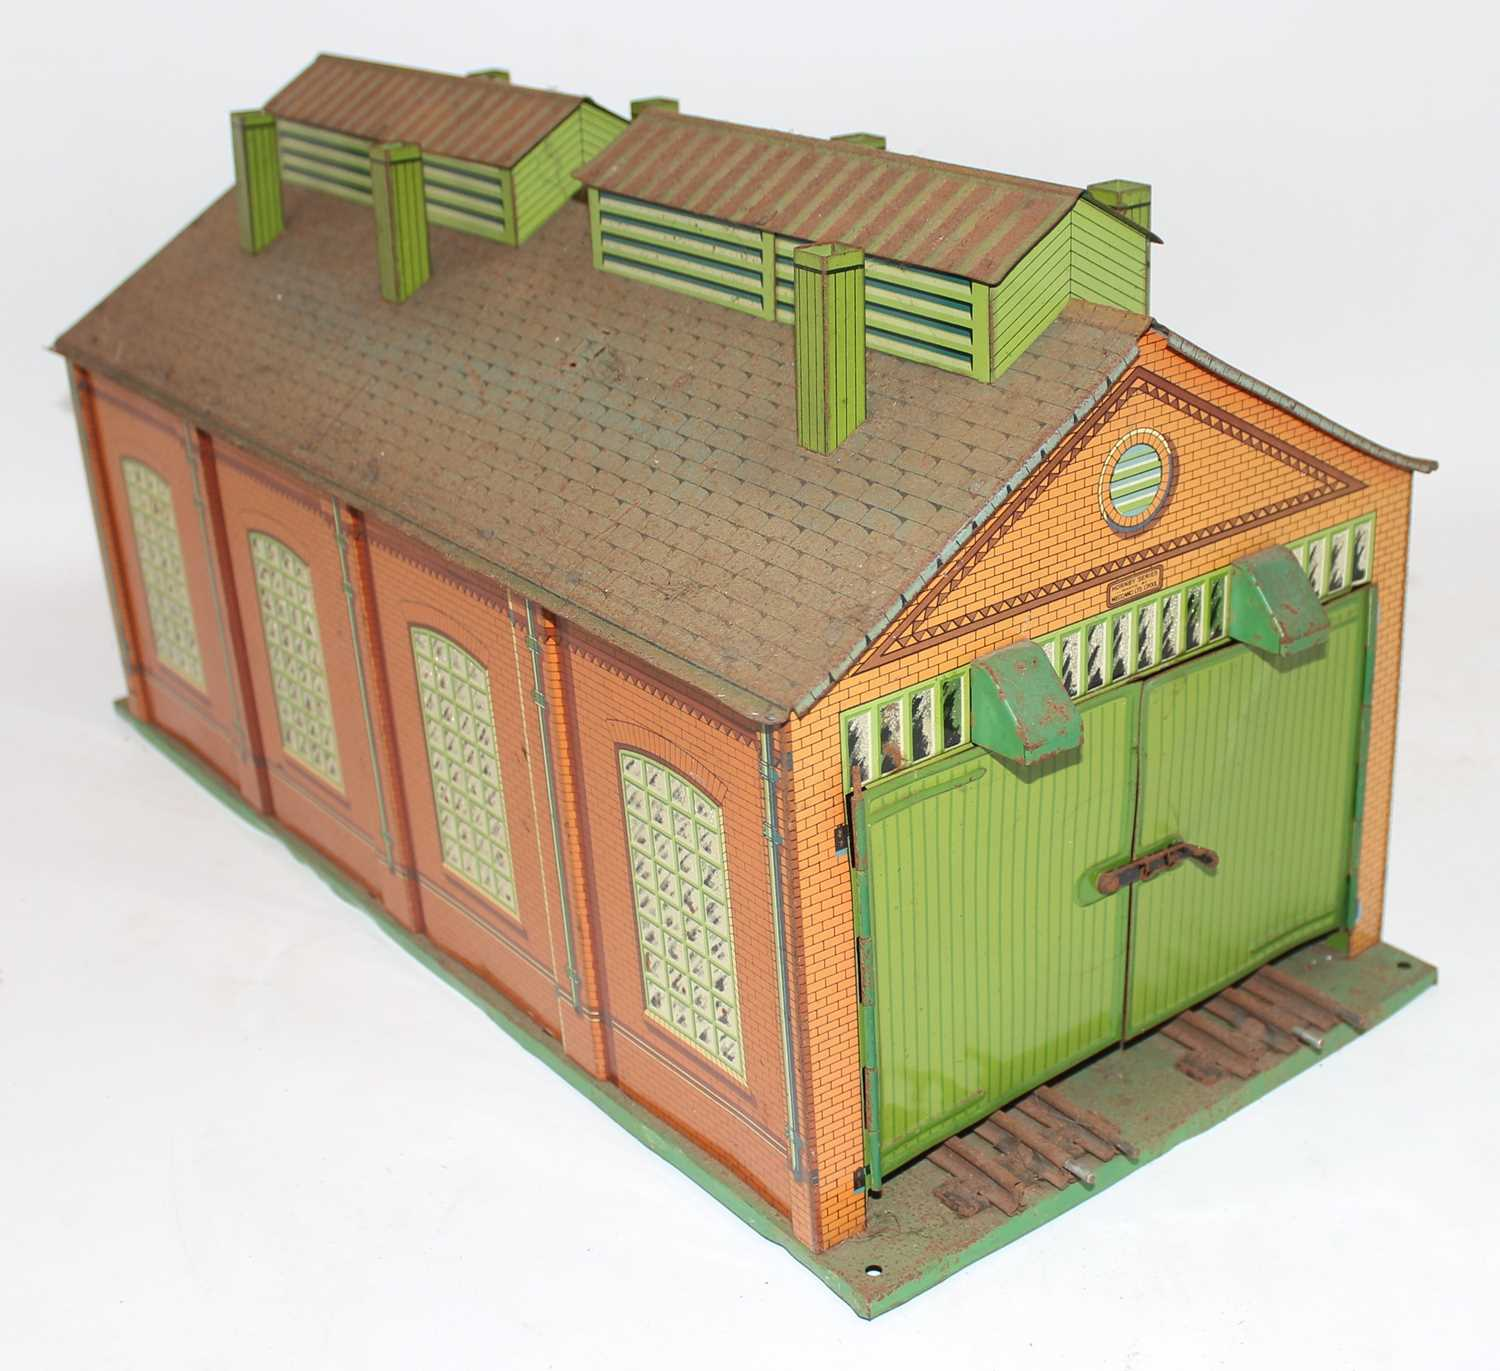 1935-41 Hornby E2E engine shed green base, yellow ridge tiles, inside of doors plain, missing one - Image 2 of 4